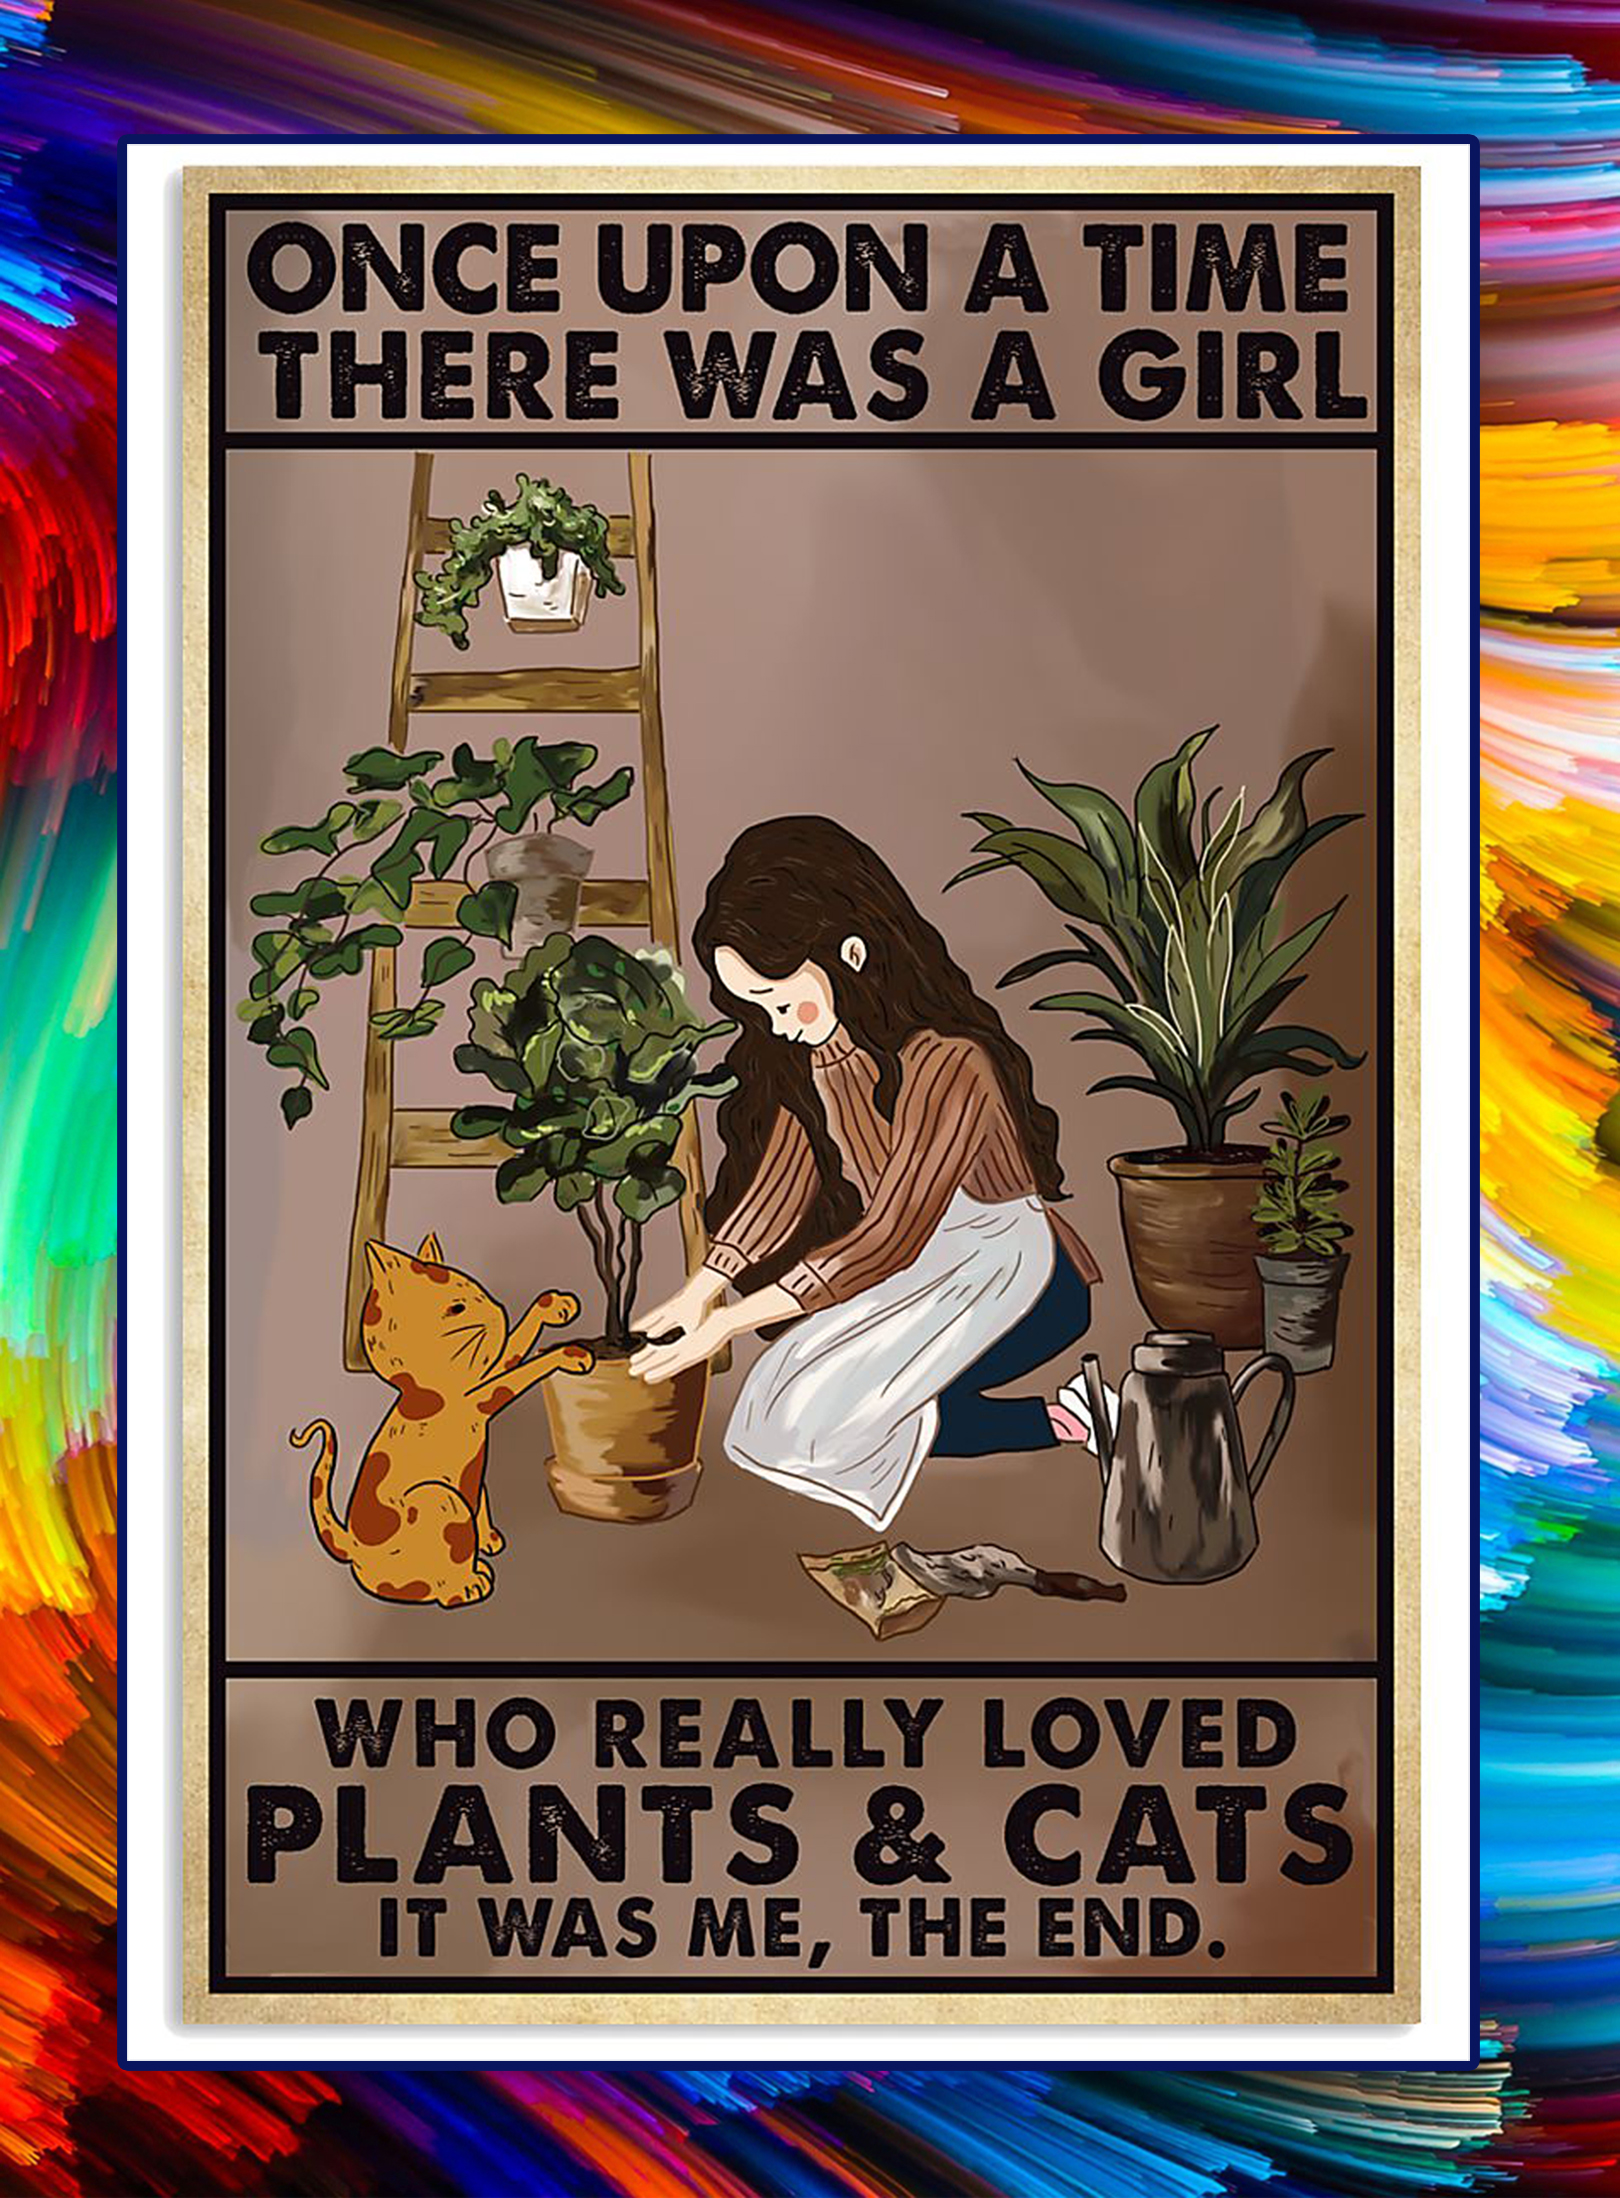 Once upon a time there was a girl who really loved plants and cats poster - A3